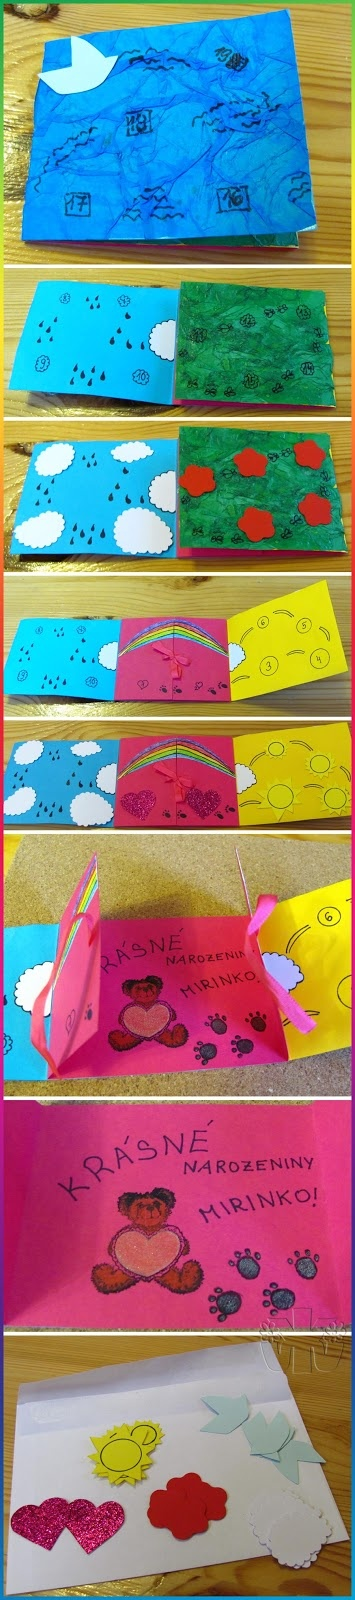 Birthday card for kids (countdown)